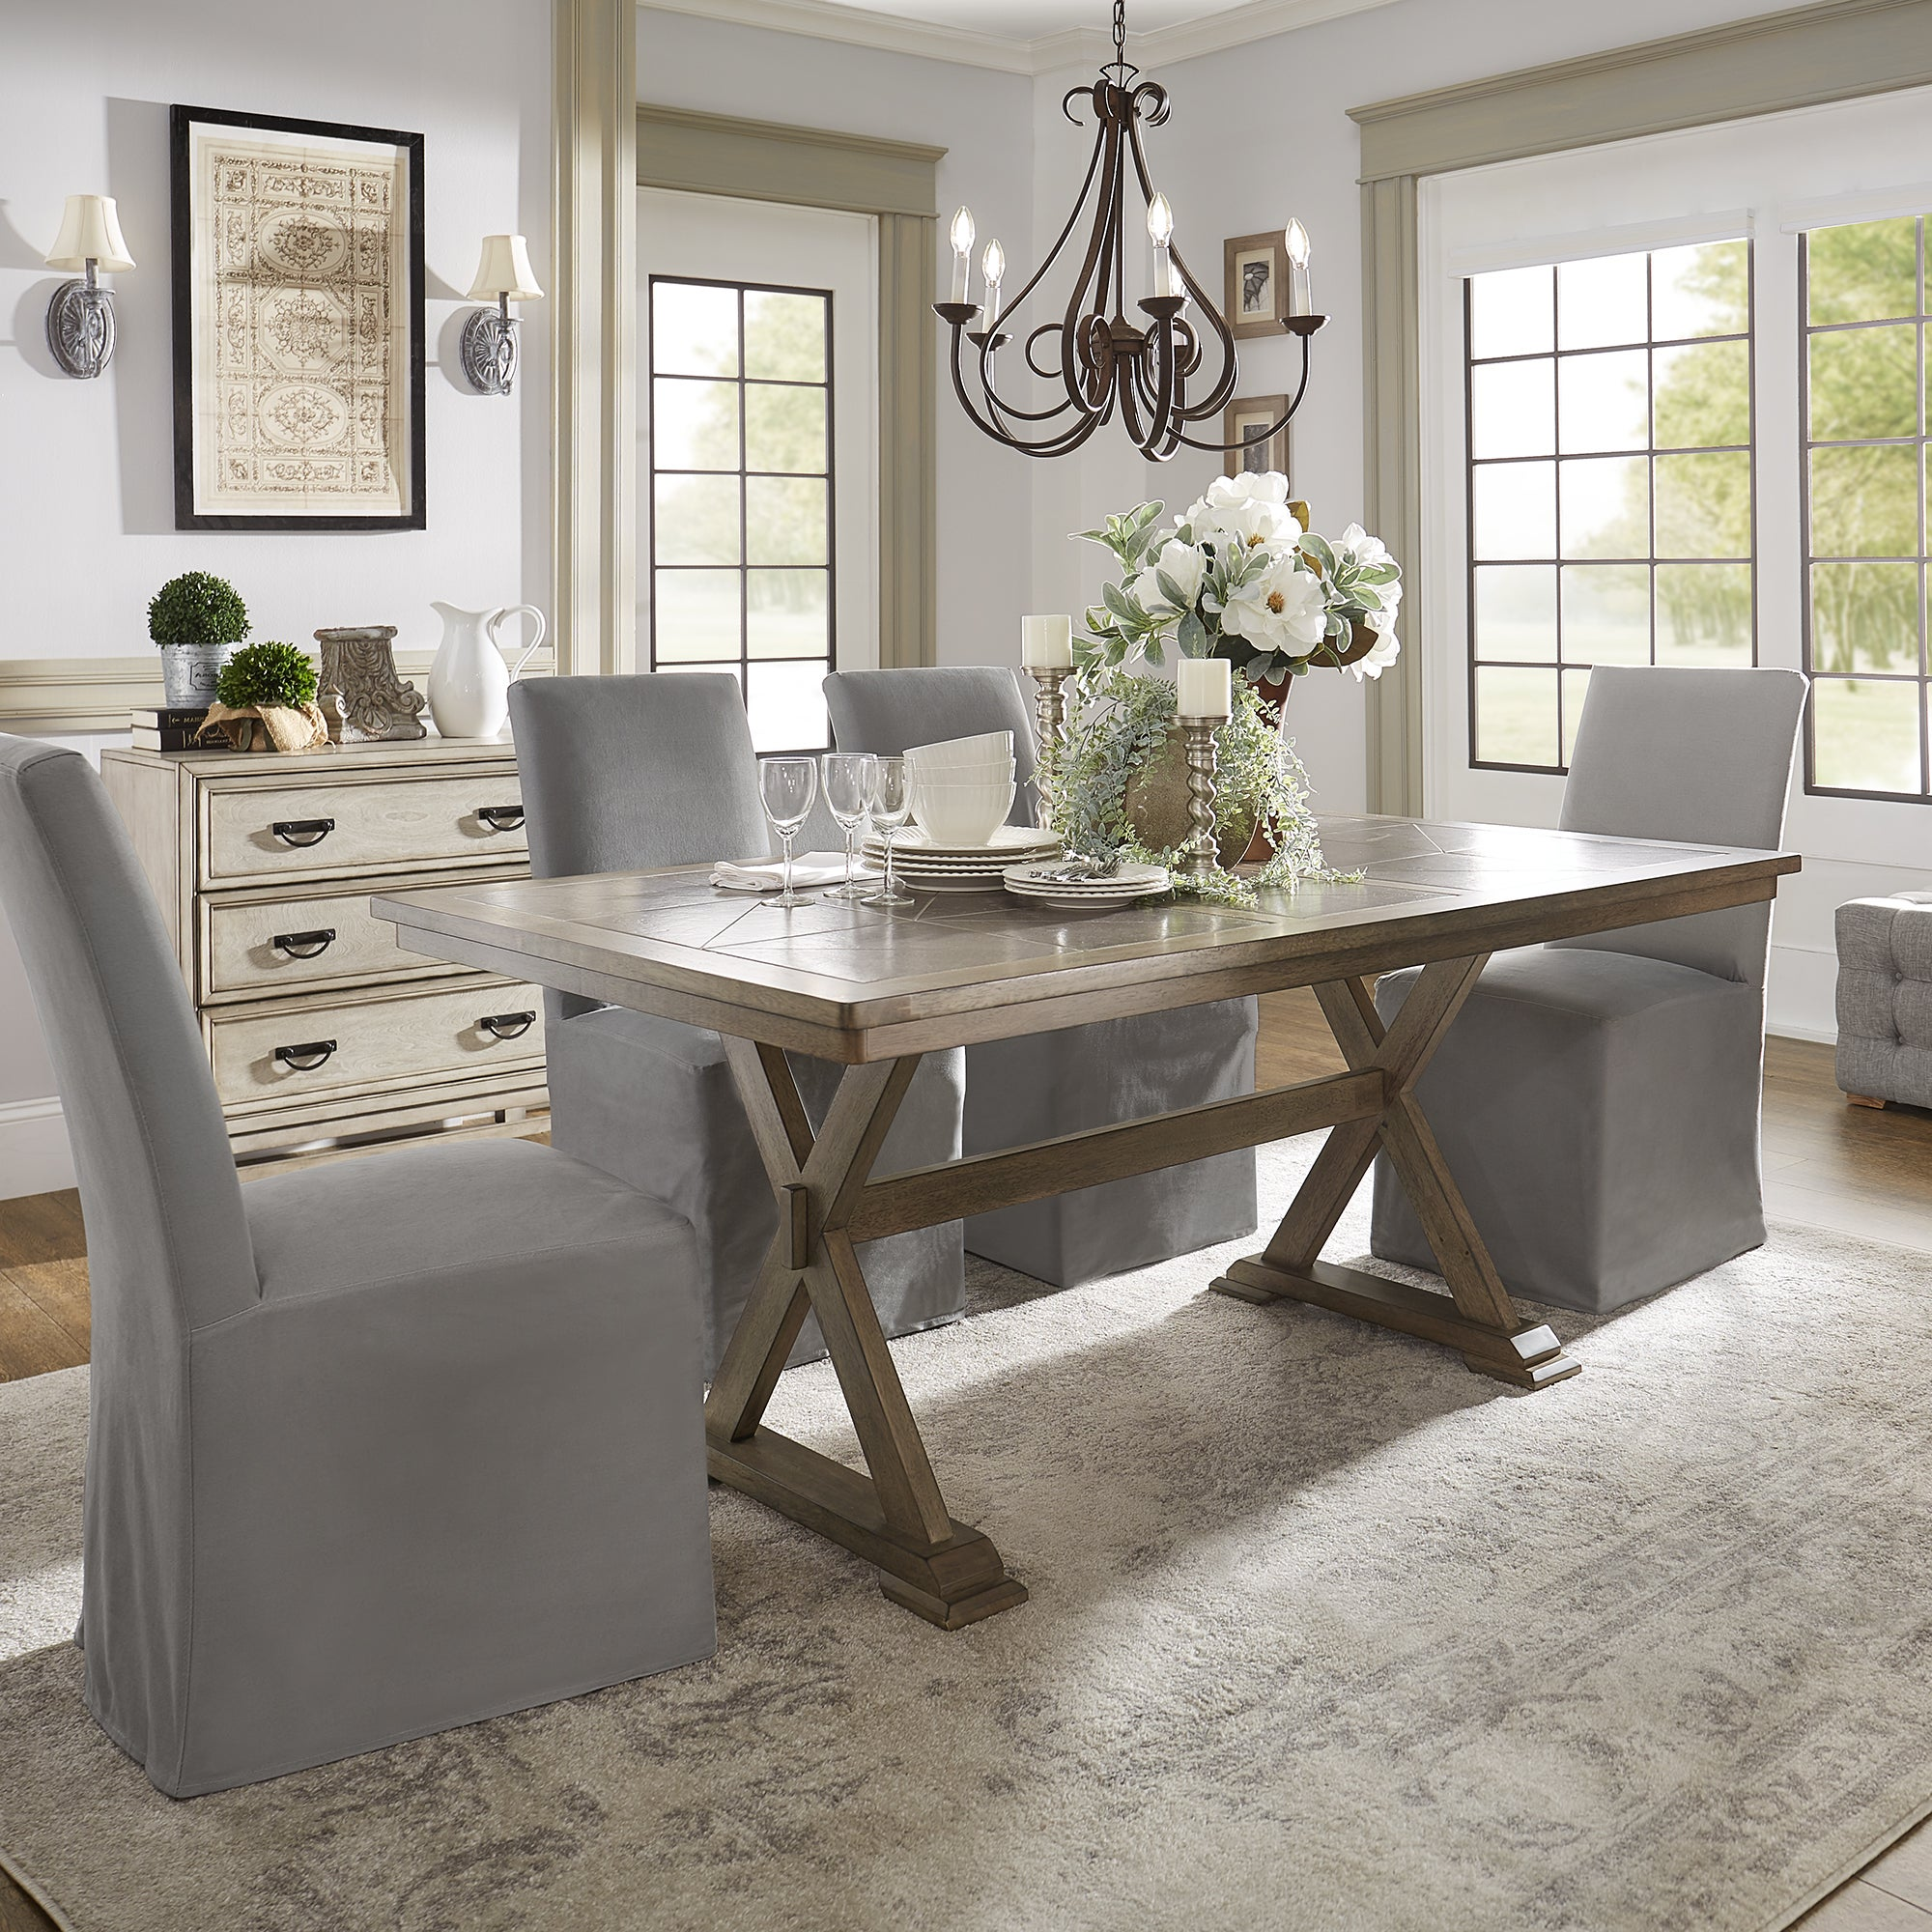 Pennington Grey Wood Rectangular Tile Top Trestle Dining Table by iNSPIRE Q  Artisan - Free Shipping Today - Overstock.com - 25288618